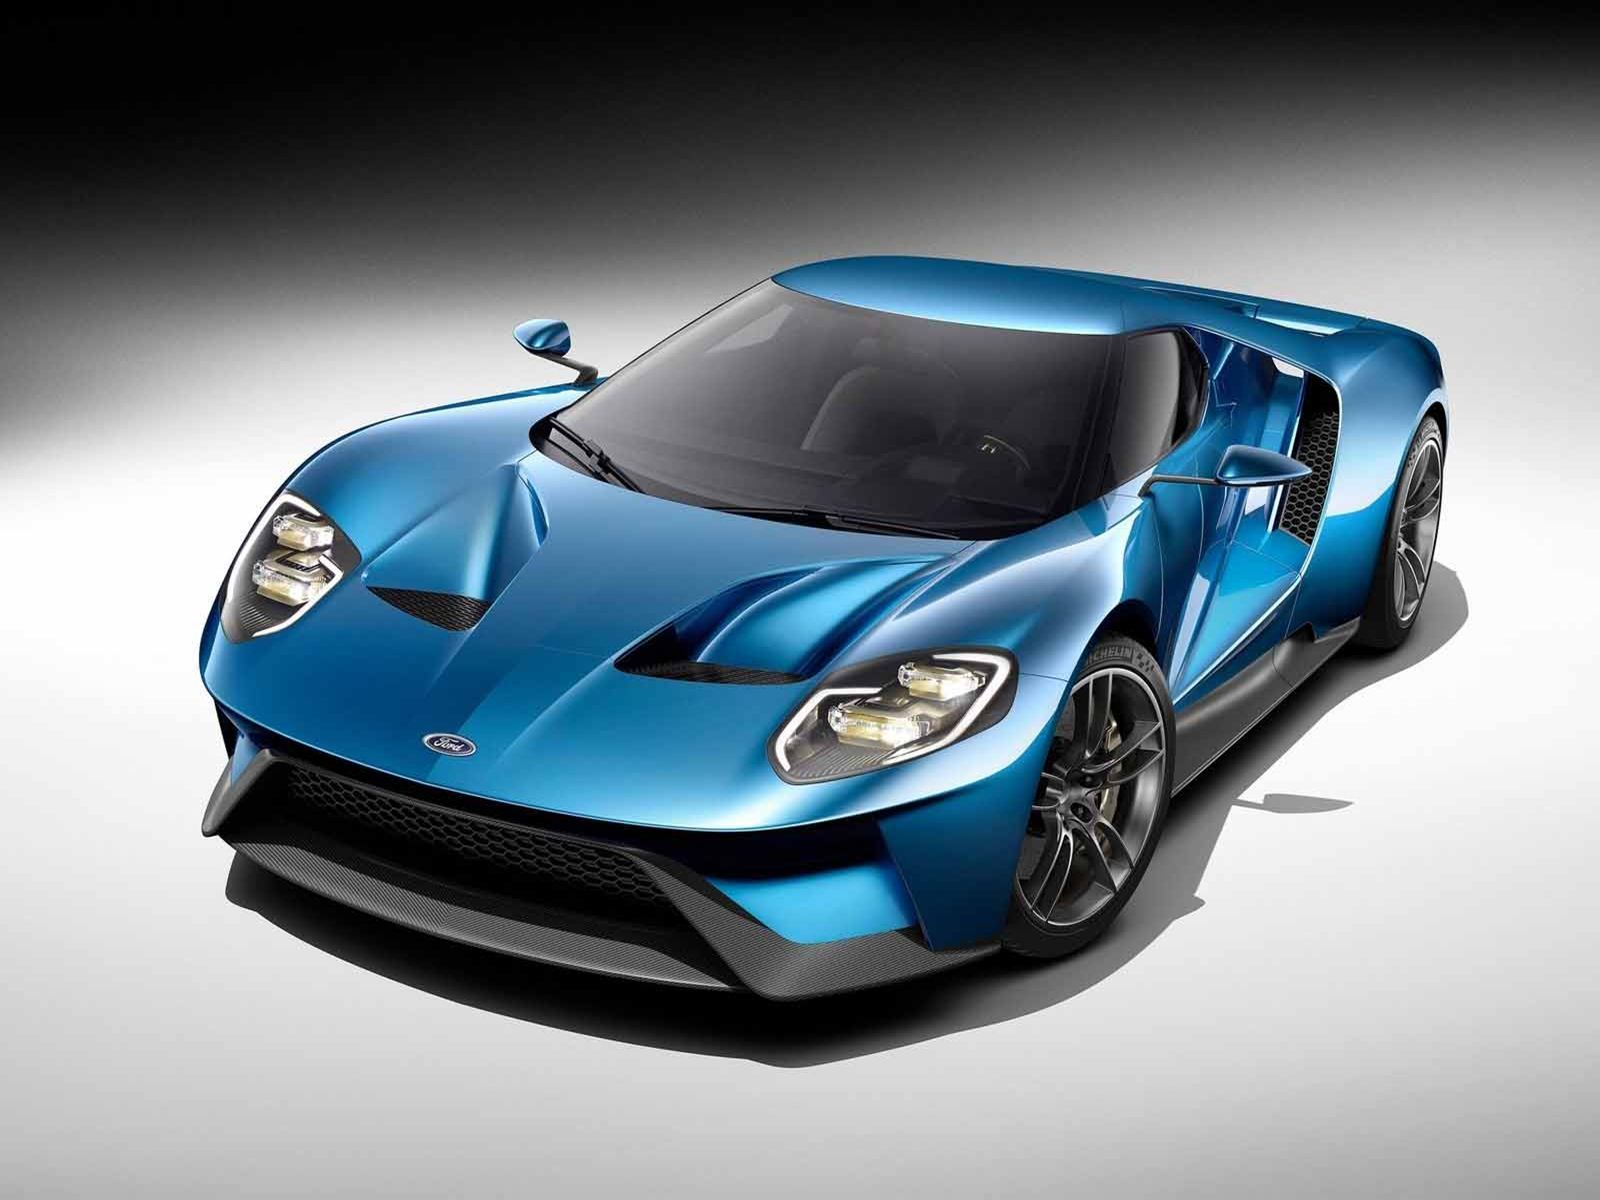 2016 ford gt sport blue wallpaper 2017 ford gt concept car beautiful - New Ford Gt 2017 Supercar